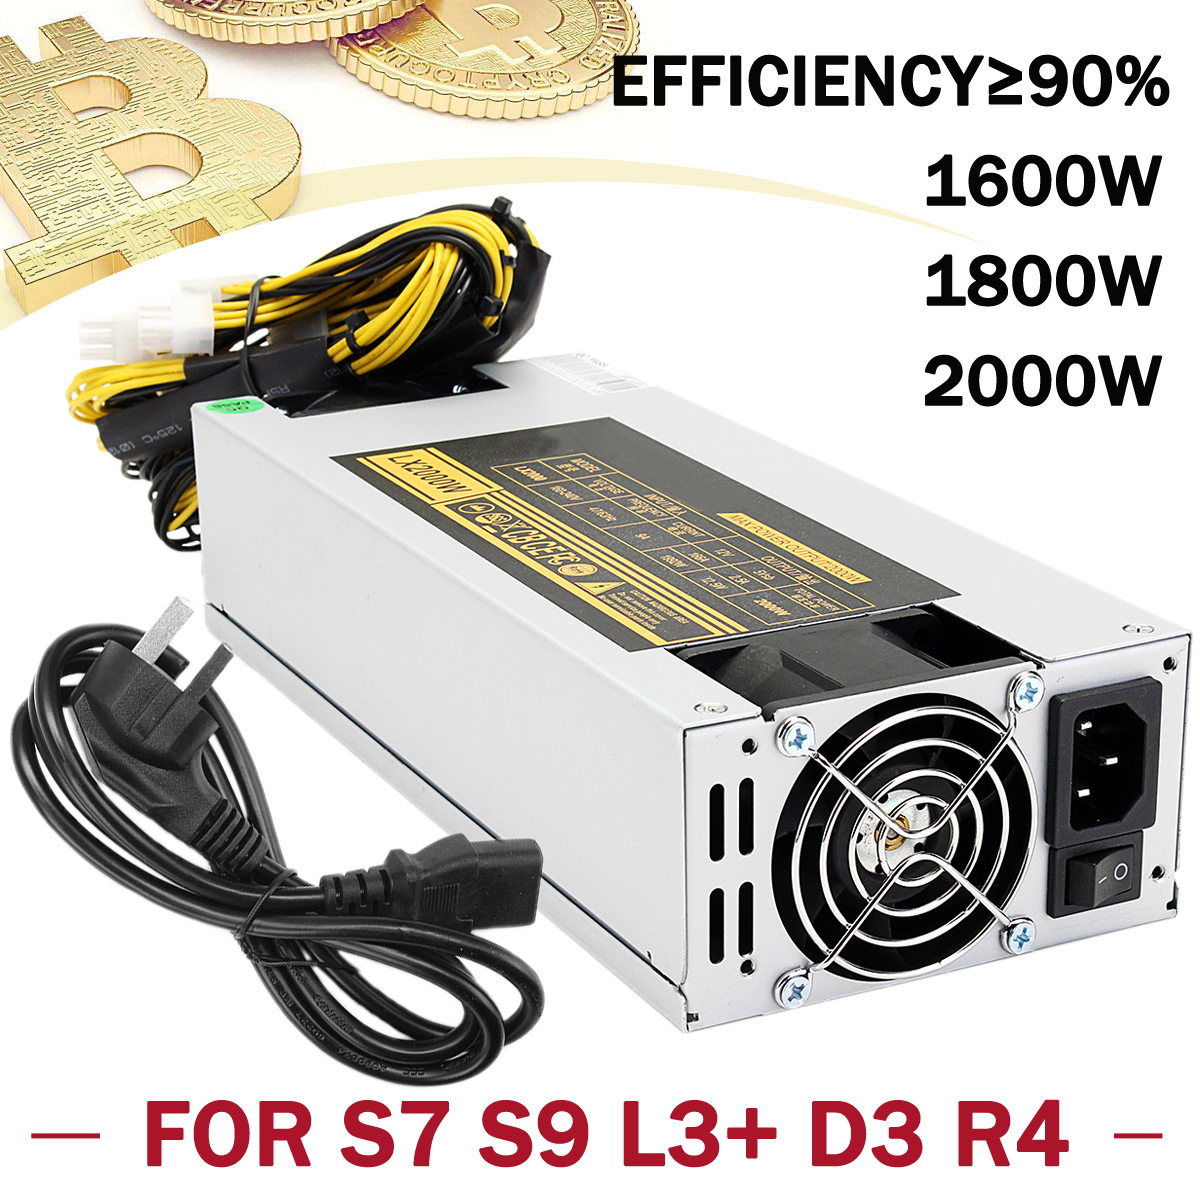 1600W/1800W/2000W Mining Power Supply Power Mining Machine Mining Rig For S7 S9 L3+ D3 R4